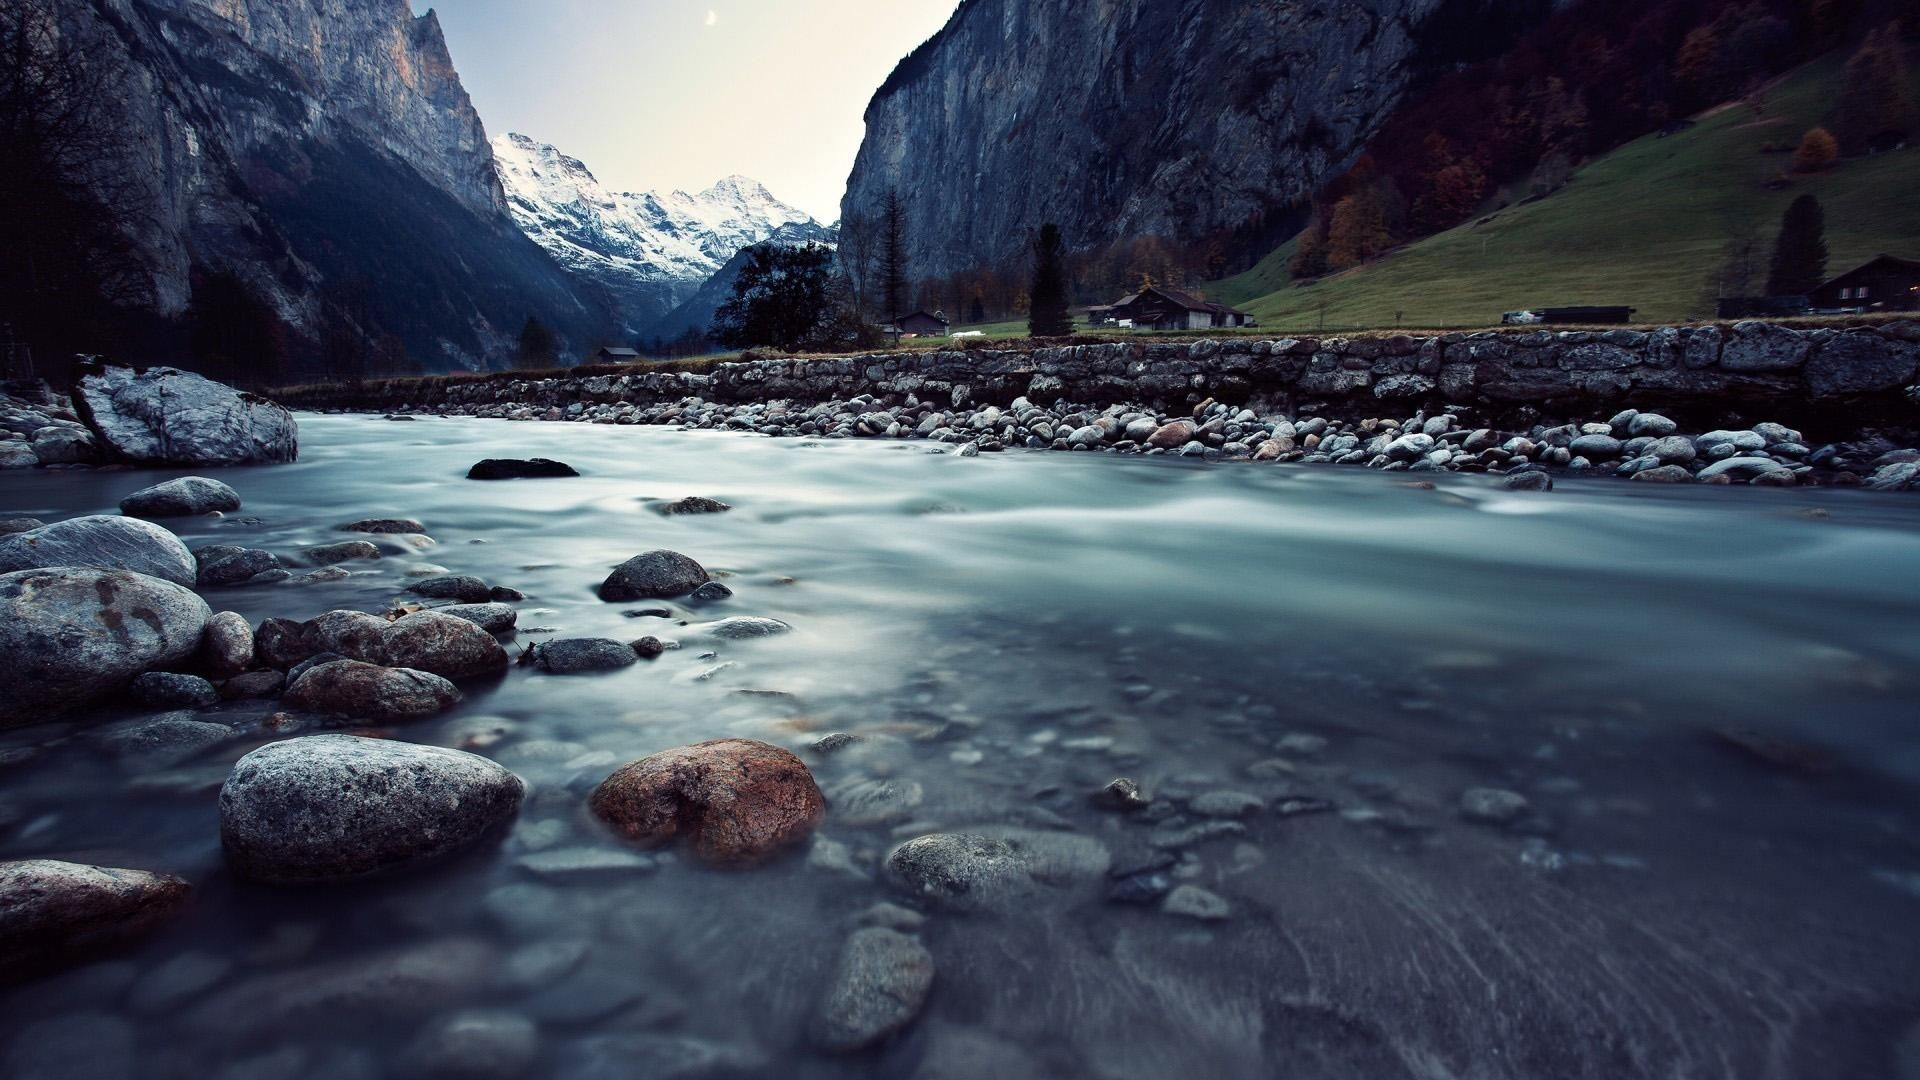 Awesome Landscape Hd Wallpapers 1080p About Wallpapers Macbook Pro 15 Backgrounds 1920x1080 Download Hd Wallpaper Wallpapertip